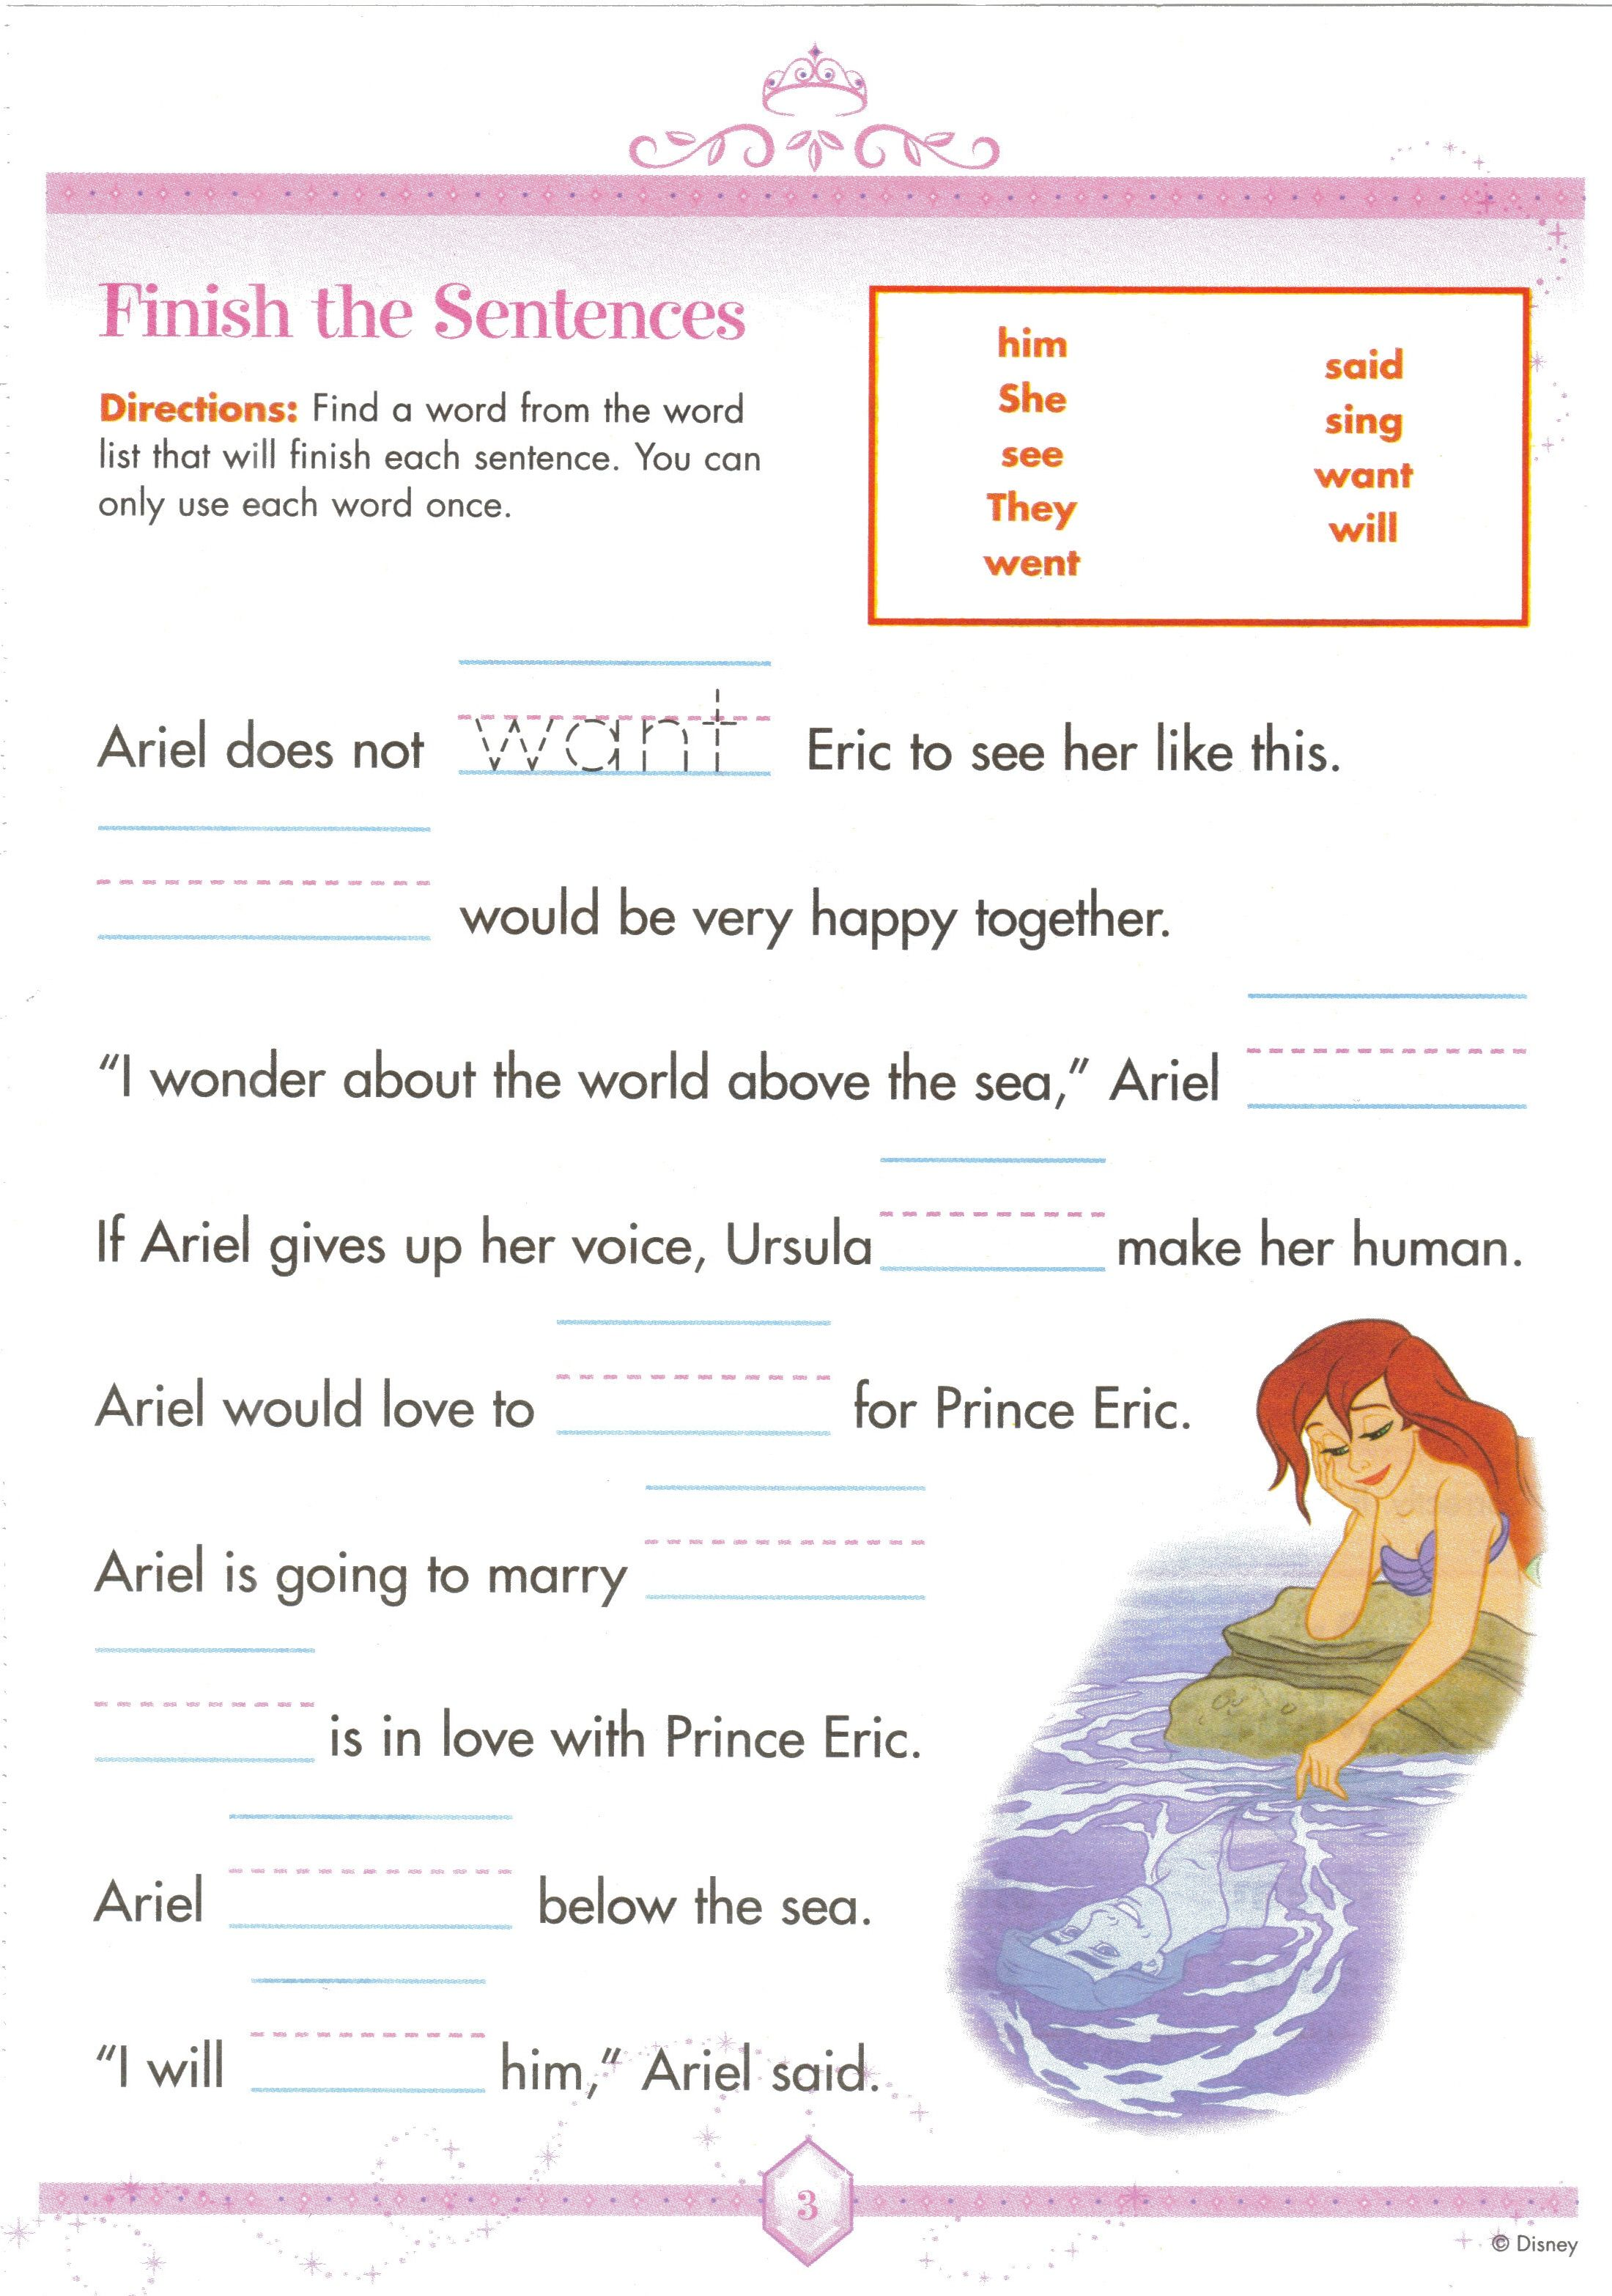 Weirdmailus  Surprising  Images About Worksheets On Pinterest  Fun Facts For Kids  With Marvelous  Images About Worksheets On Pinterest  Fun Facts For Kids Earth Day Worksheets And Jungles With Awesome Stoichiometry Practice Worksheets Also Ratio And Proportion Worksheets Th Grade In Addition Alphabet Worksheets Az And Greek Alphabet Worksheets As Well As Pre Primary Worksheets Free Additionally Writing Simple Sentences Worksheet From Pinterestcom With Weirdmailus  Marvelous  Images About Worksheets On Pinterest  Fun Facts For Kids  With Awesome  Images About Worksheets On Pinterest  Fun Facts For Kids Earth Day Worksheets And Jungles And Surprising Stoichiometry Practice Worksheets Also Ratio And Proportion Worksheets Th Grade In Addition Alphabet Worksheets Az From Pinterestcom